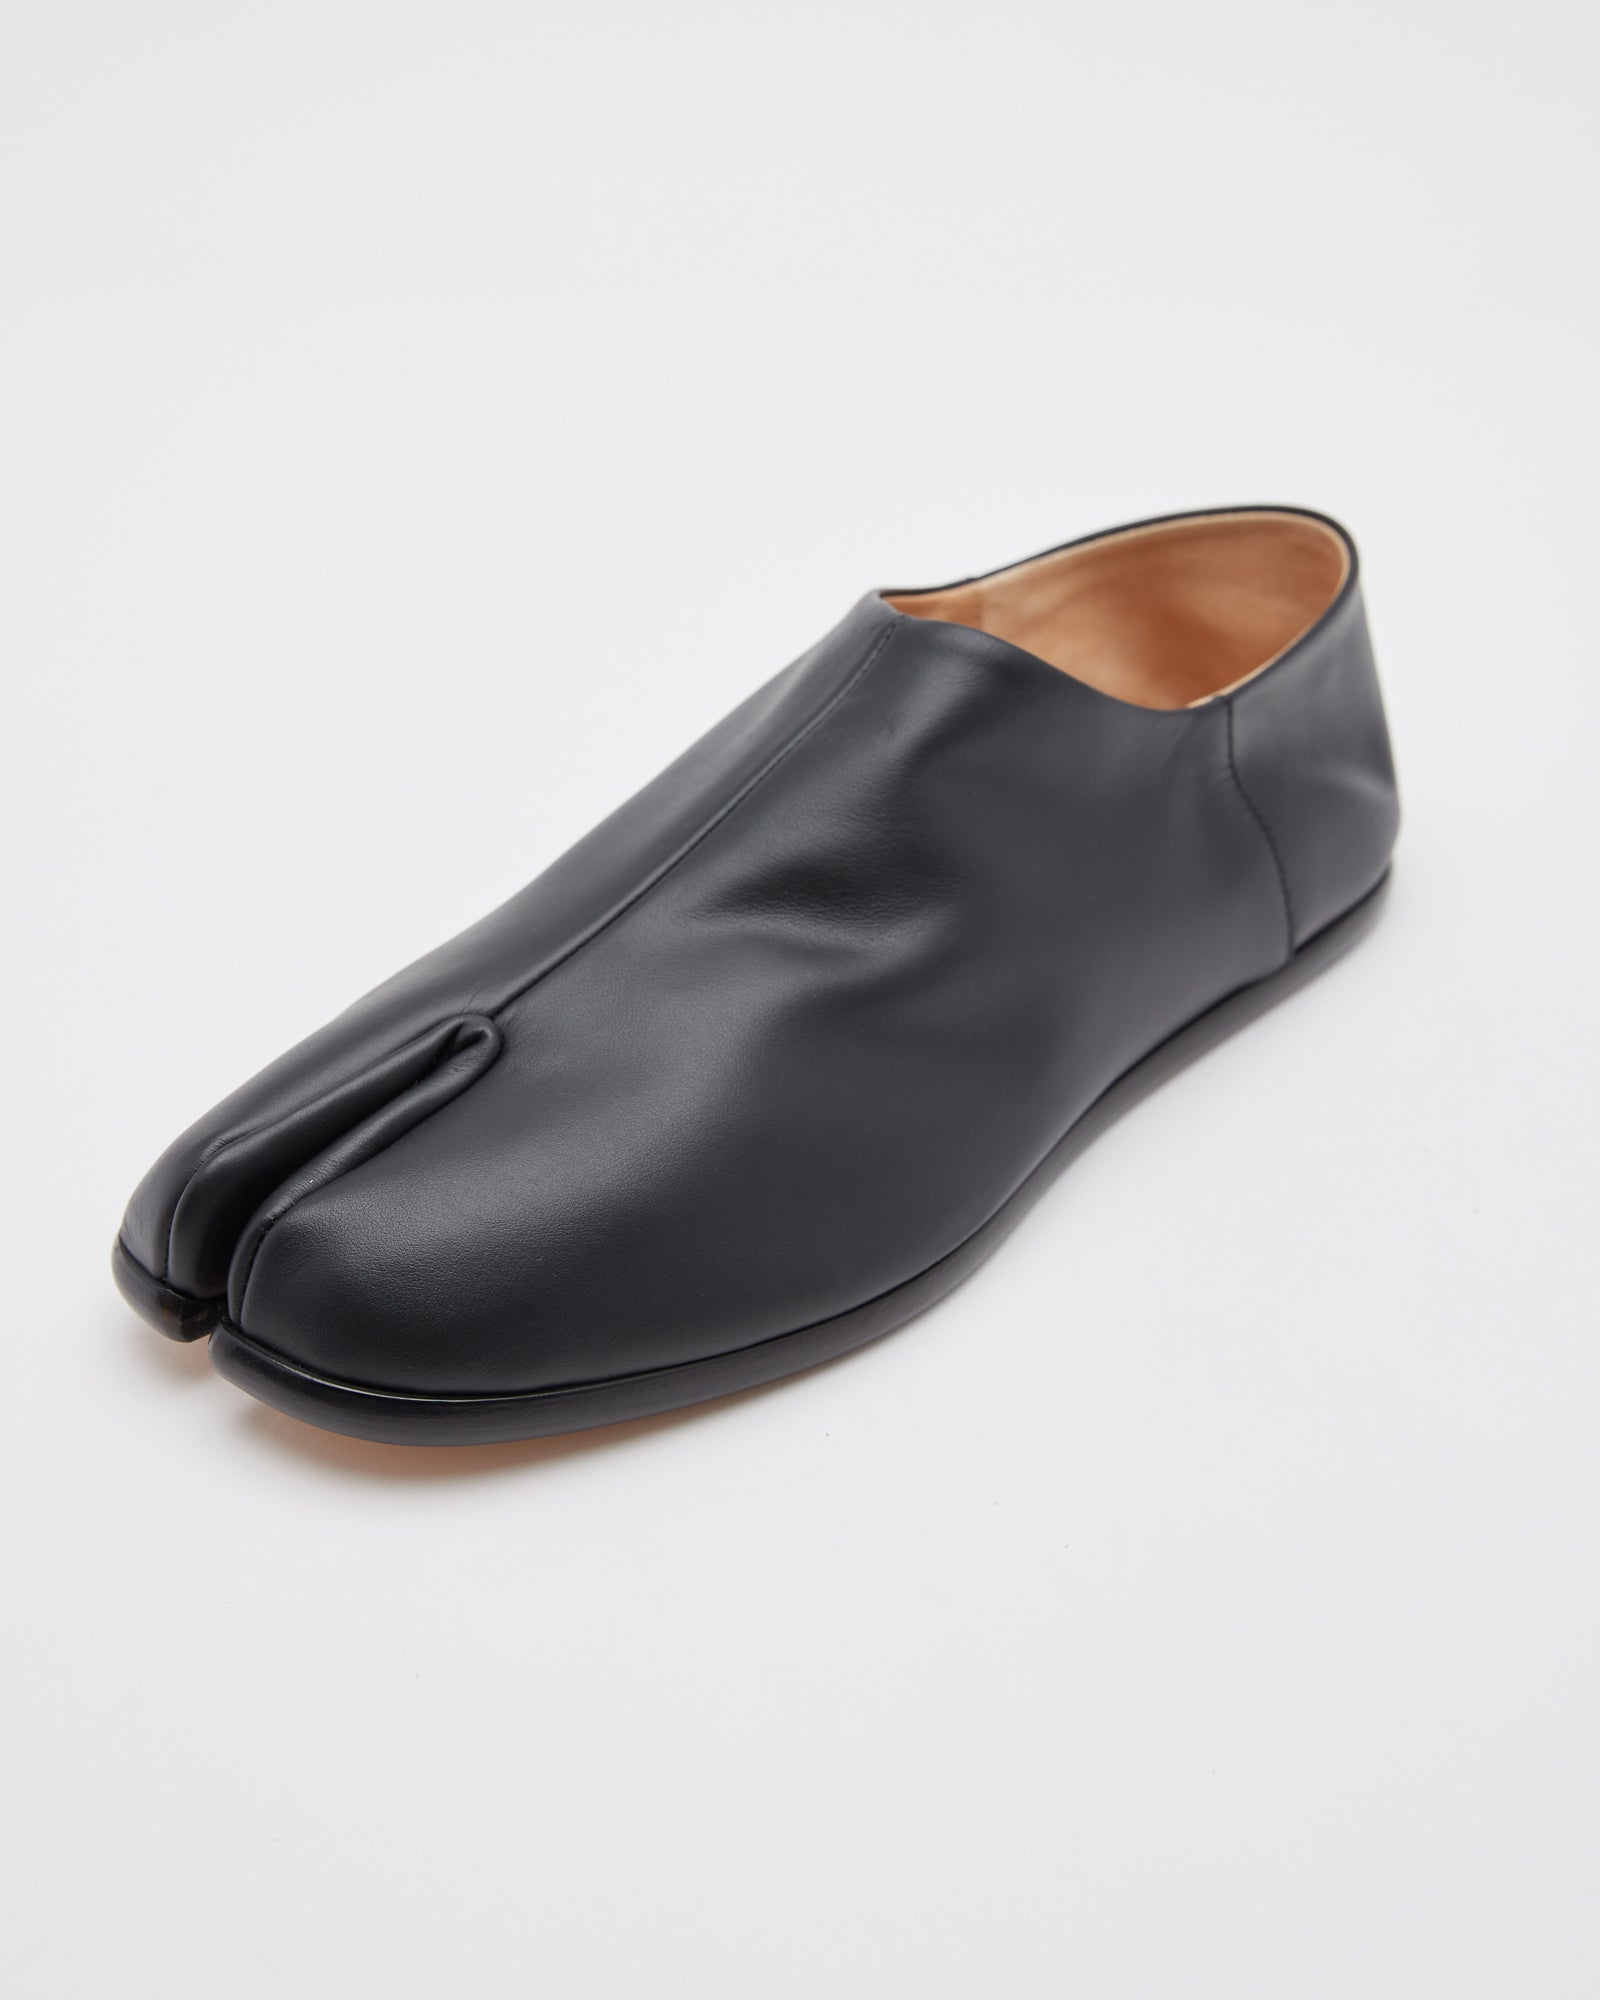 Tabi Loafers in Black Leather